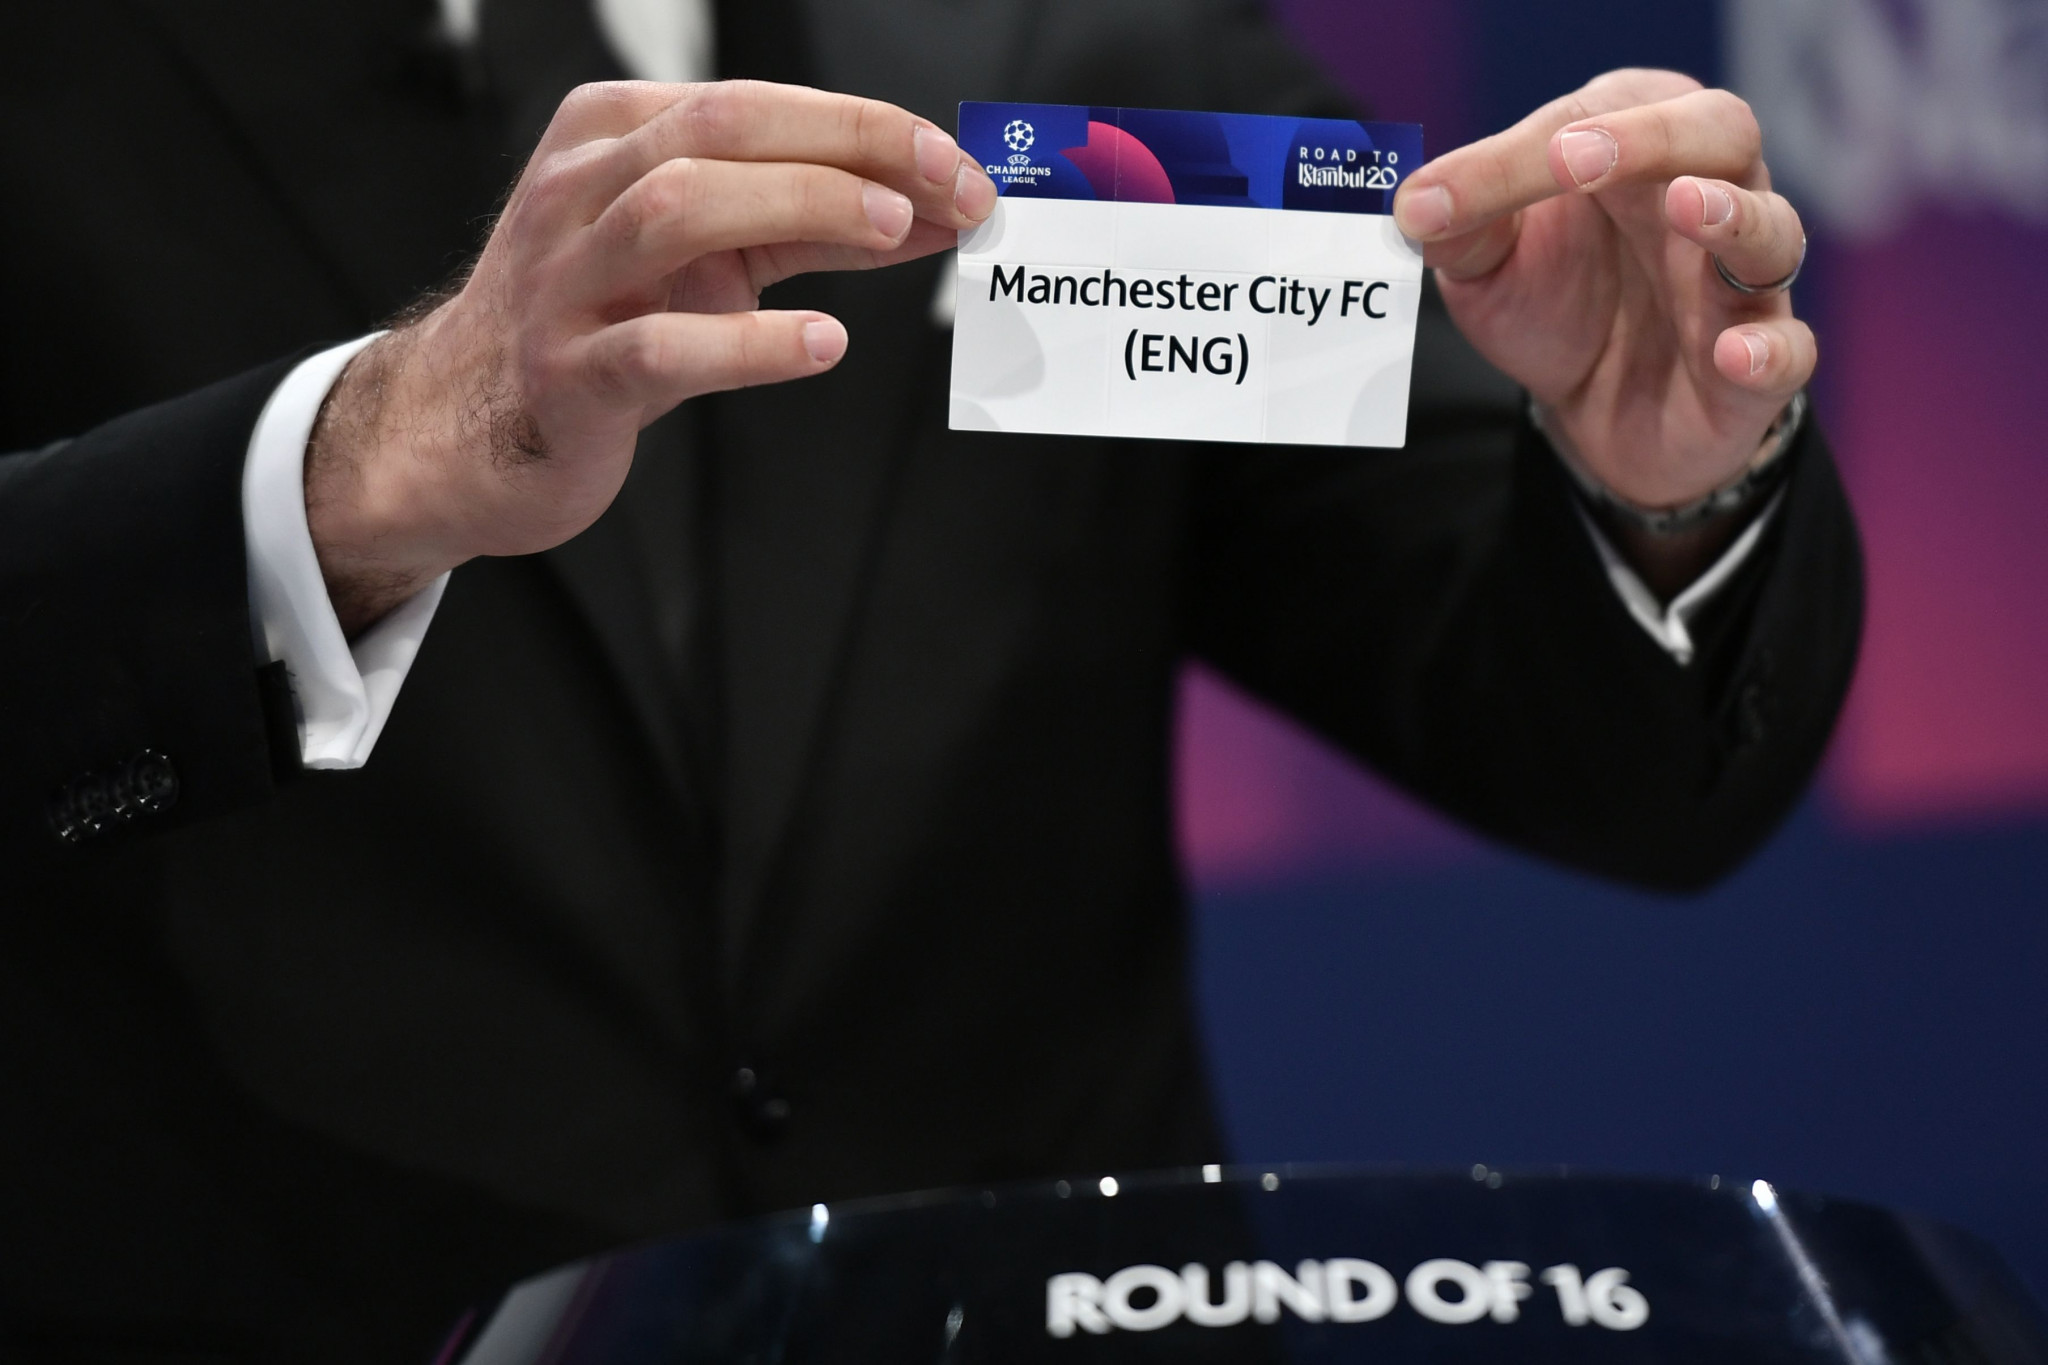 Manchester City handed two-year ban from UEFA Champions League